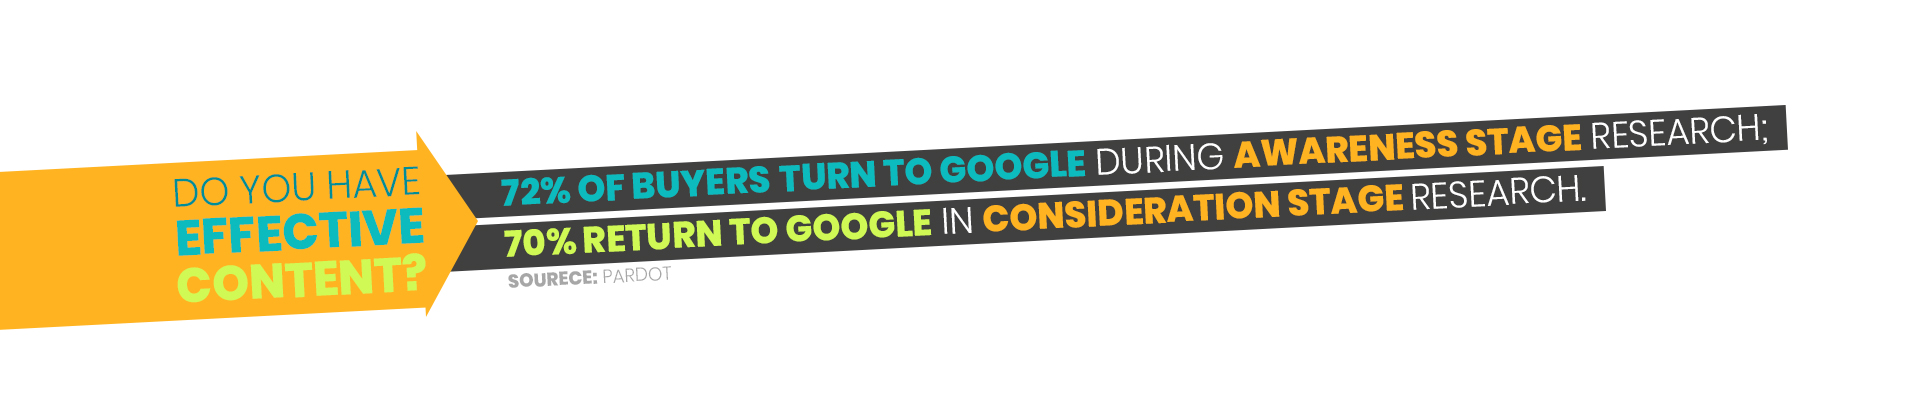 72% of buyers turn to Google during awareness stage research;  70% return to Google in consideration stage research.